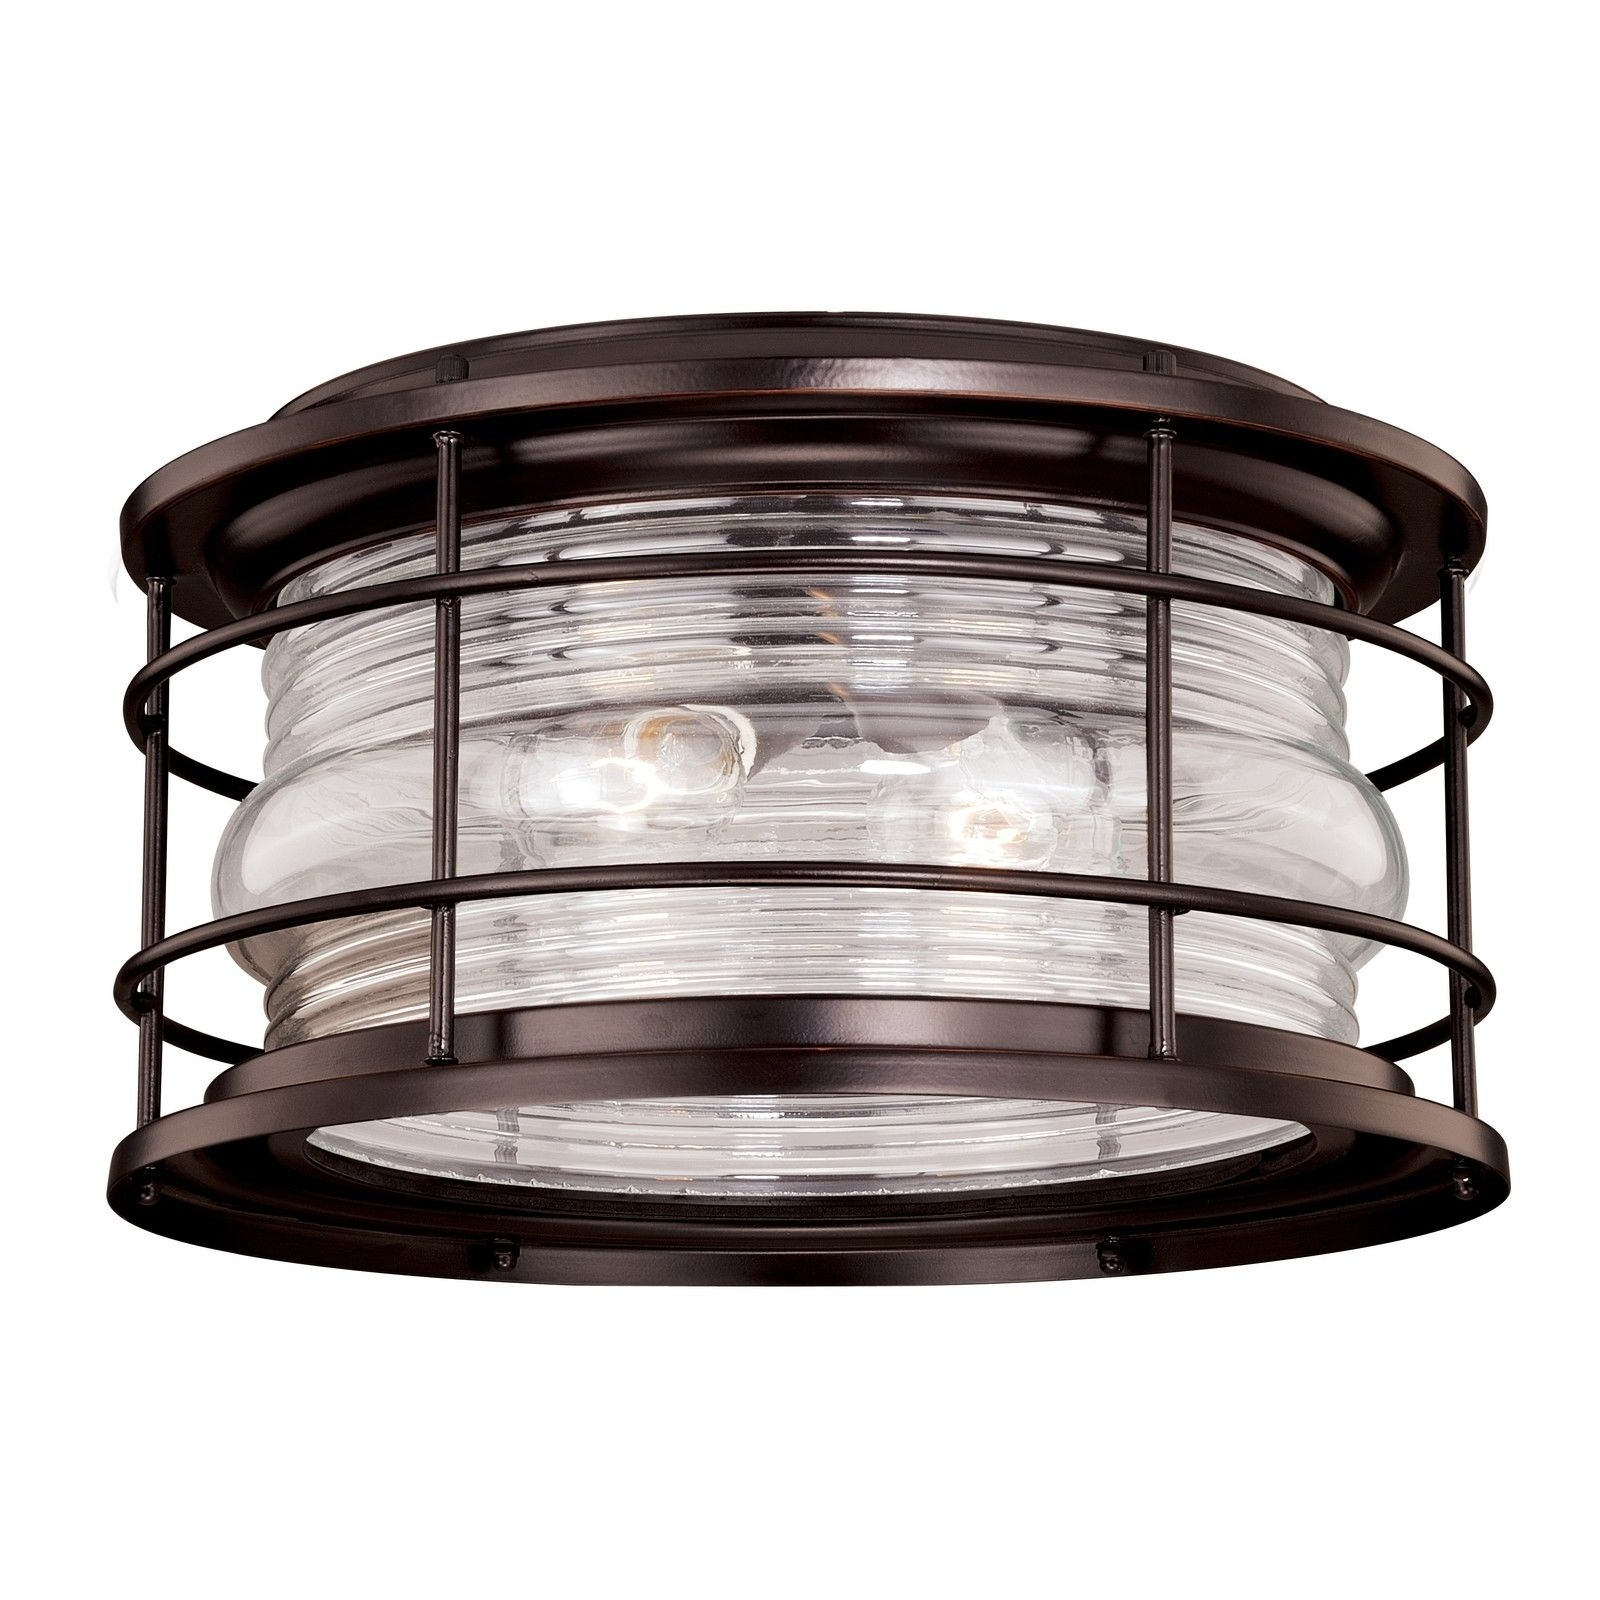 Vaxcel Lighting T0166 Hyannis Outdoor Ceiling Light In Burnished Intended For Outdoor Ceiling Lights At Ebay (#15 of 15)